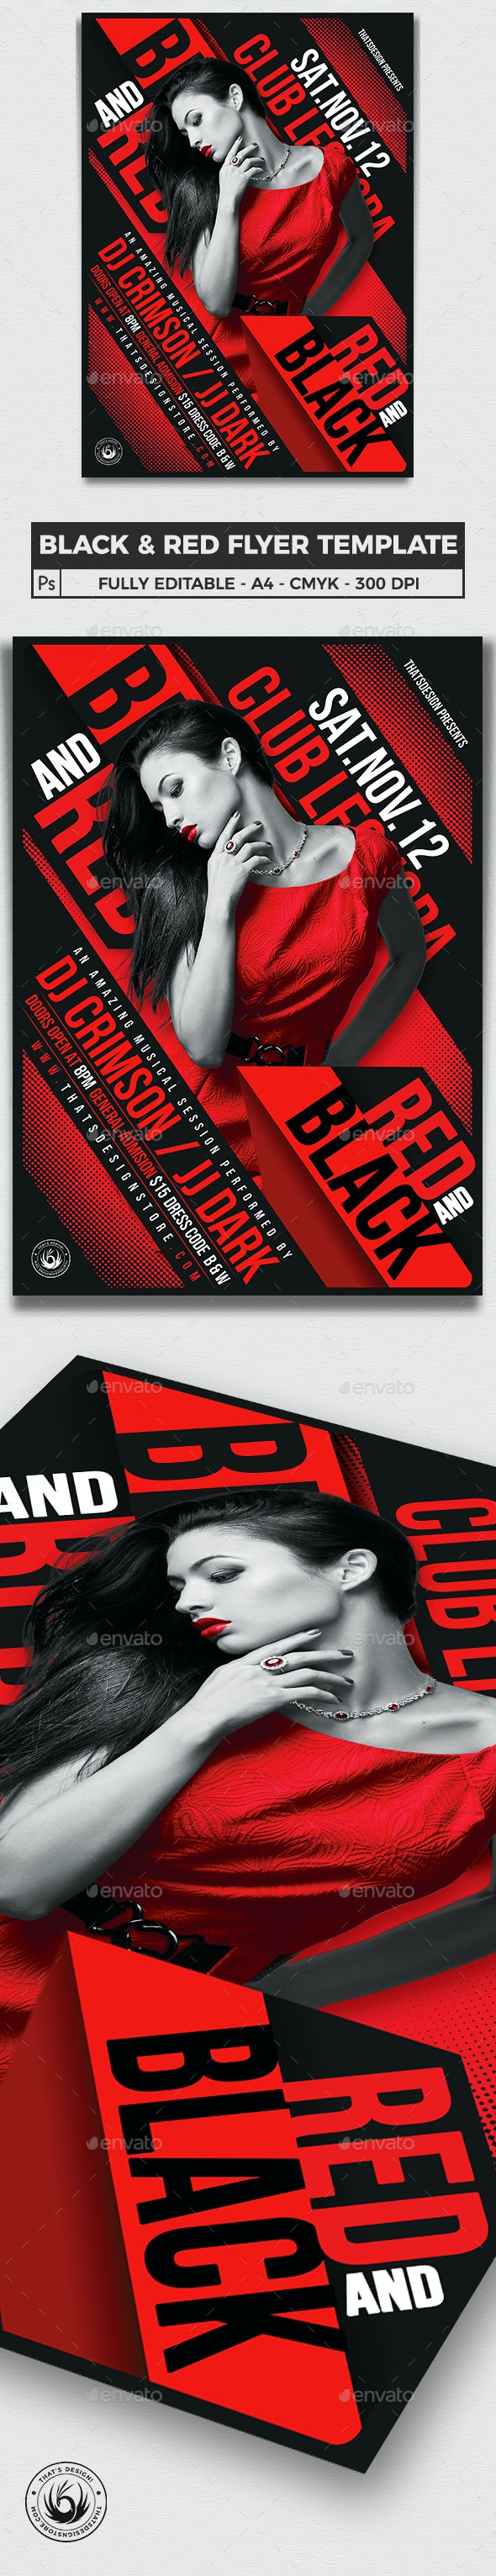 Black and Red Party Flyer Template V1 - Clubs & Parties Events